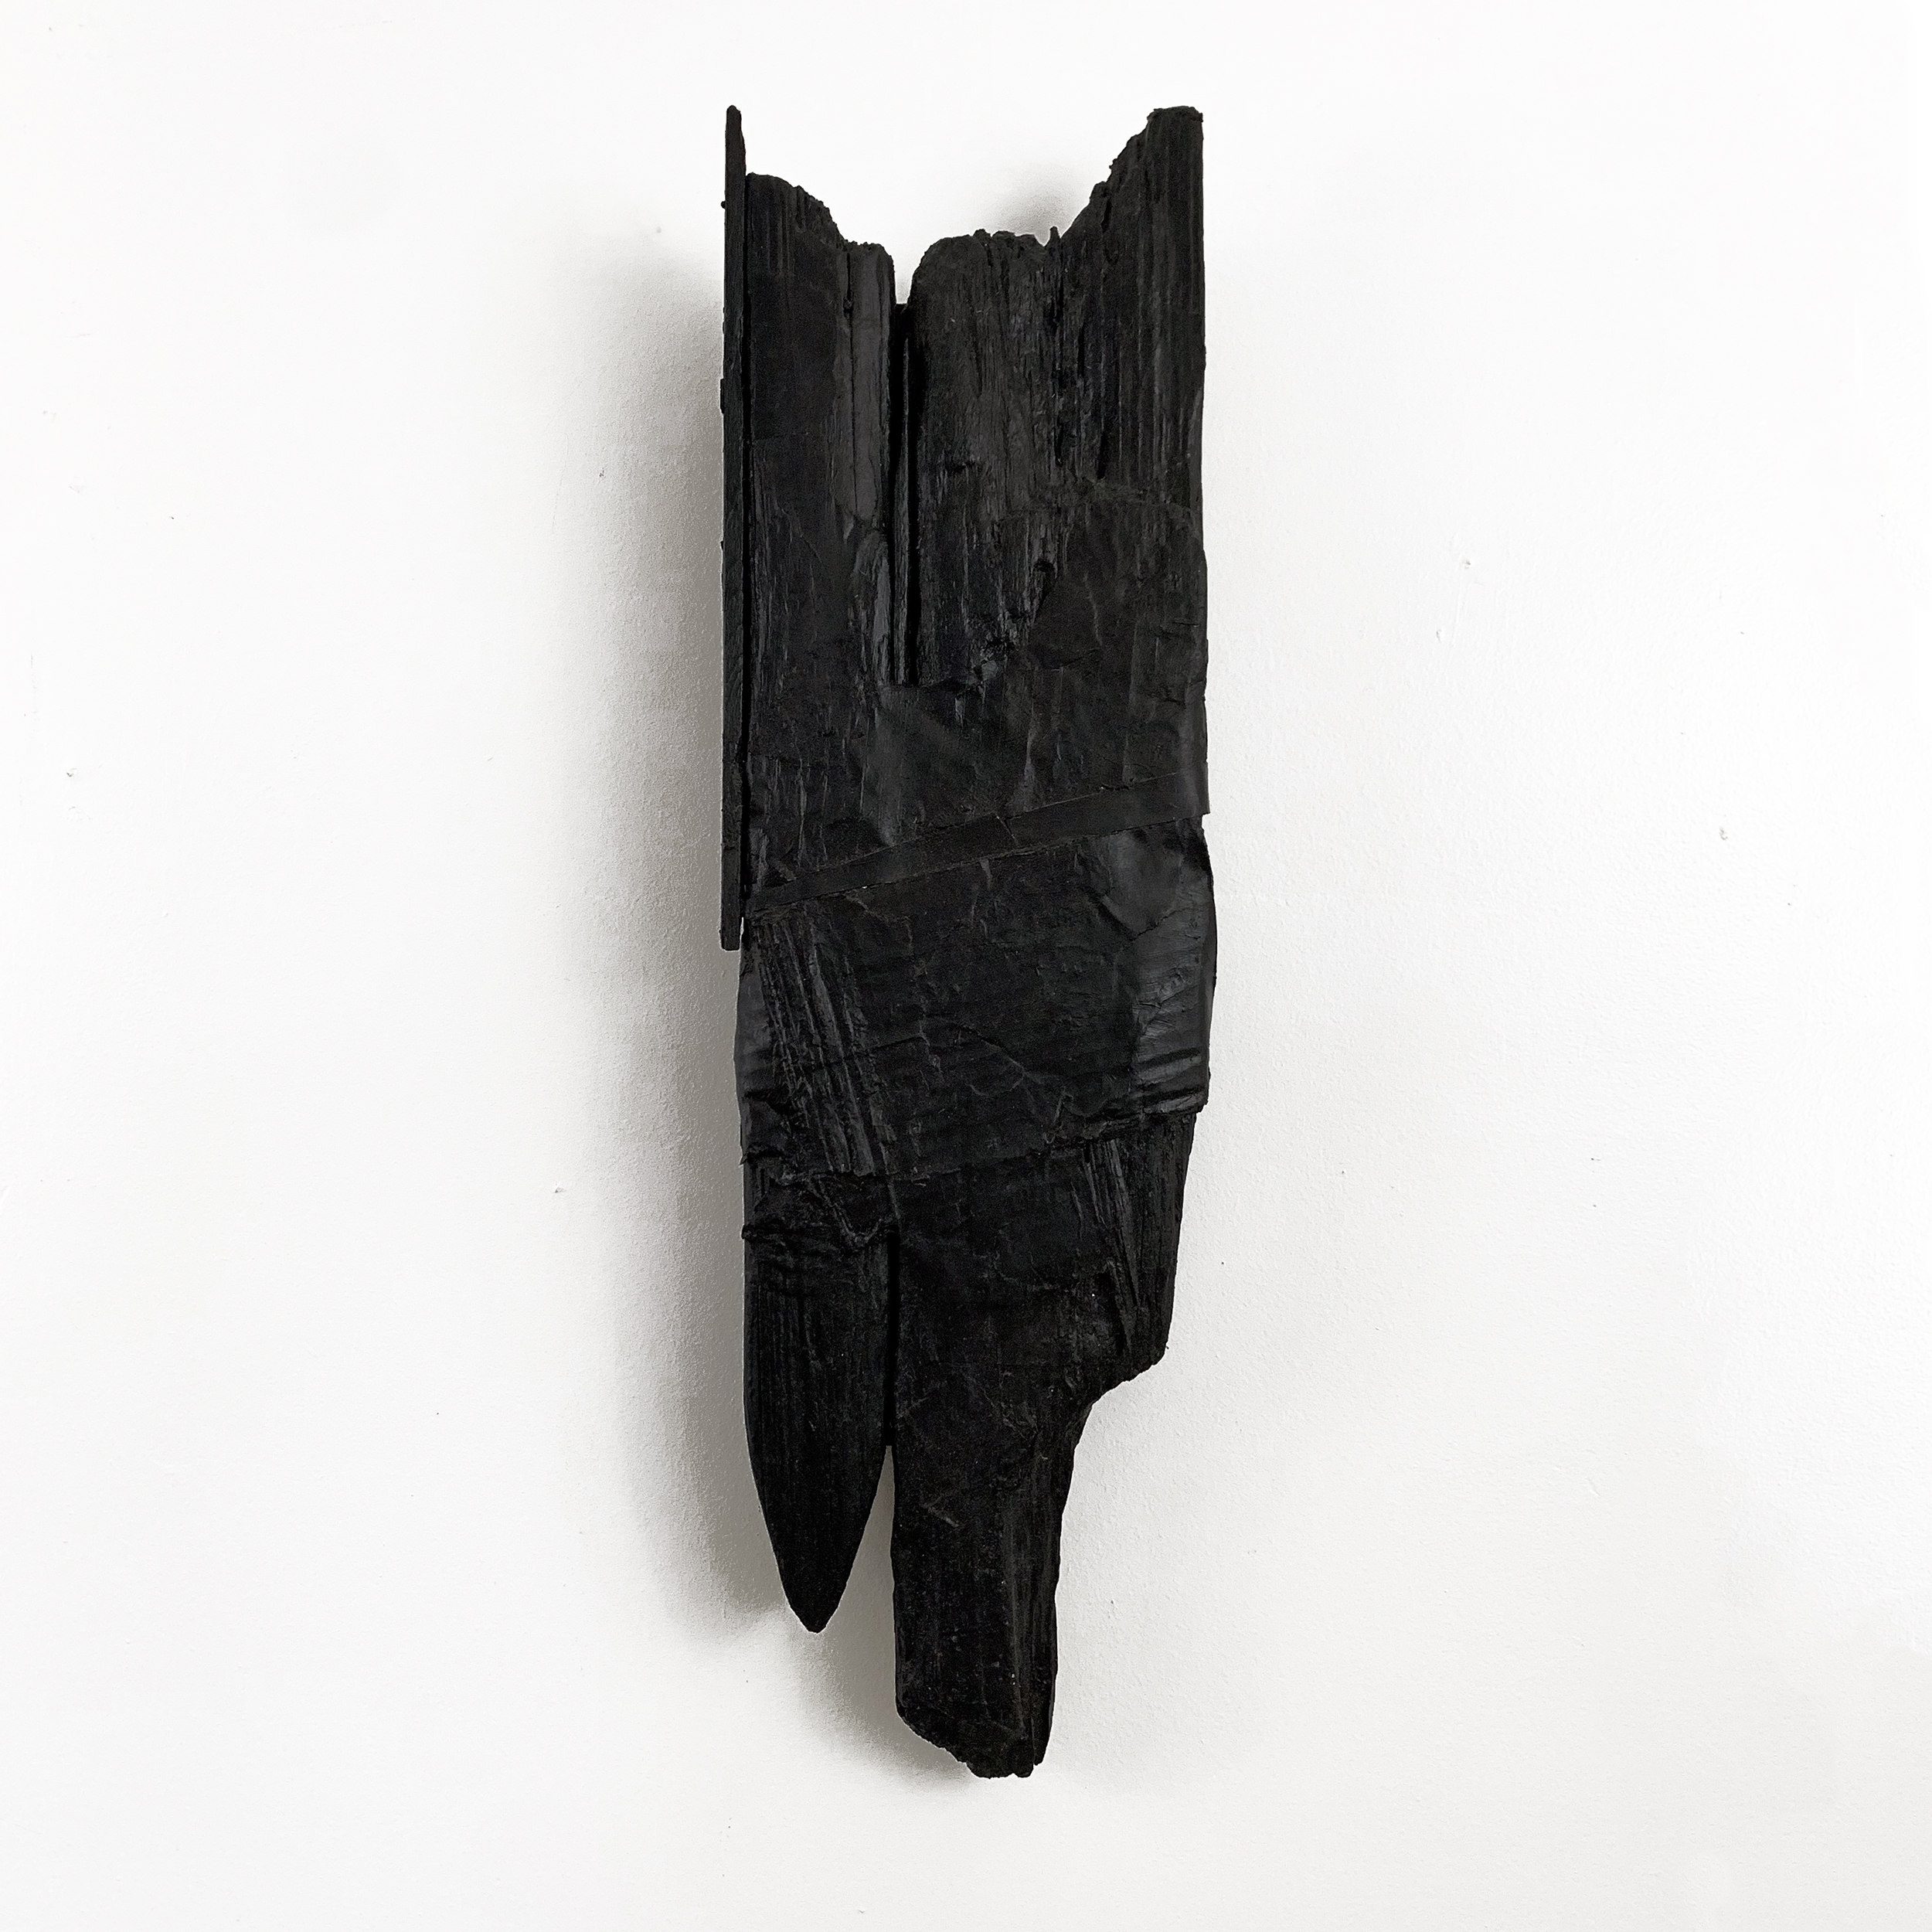 "Totem, 2013, acrylic, cardboard and wood, 28"" x 8"" x 3.25"""